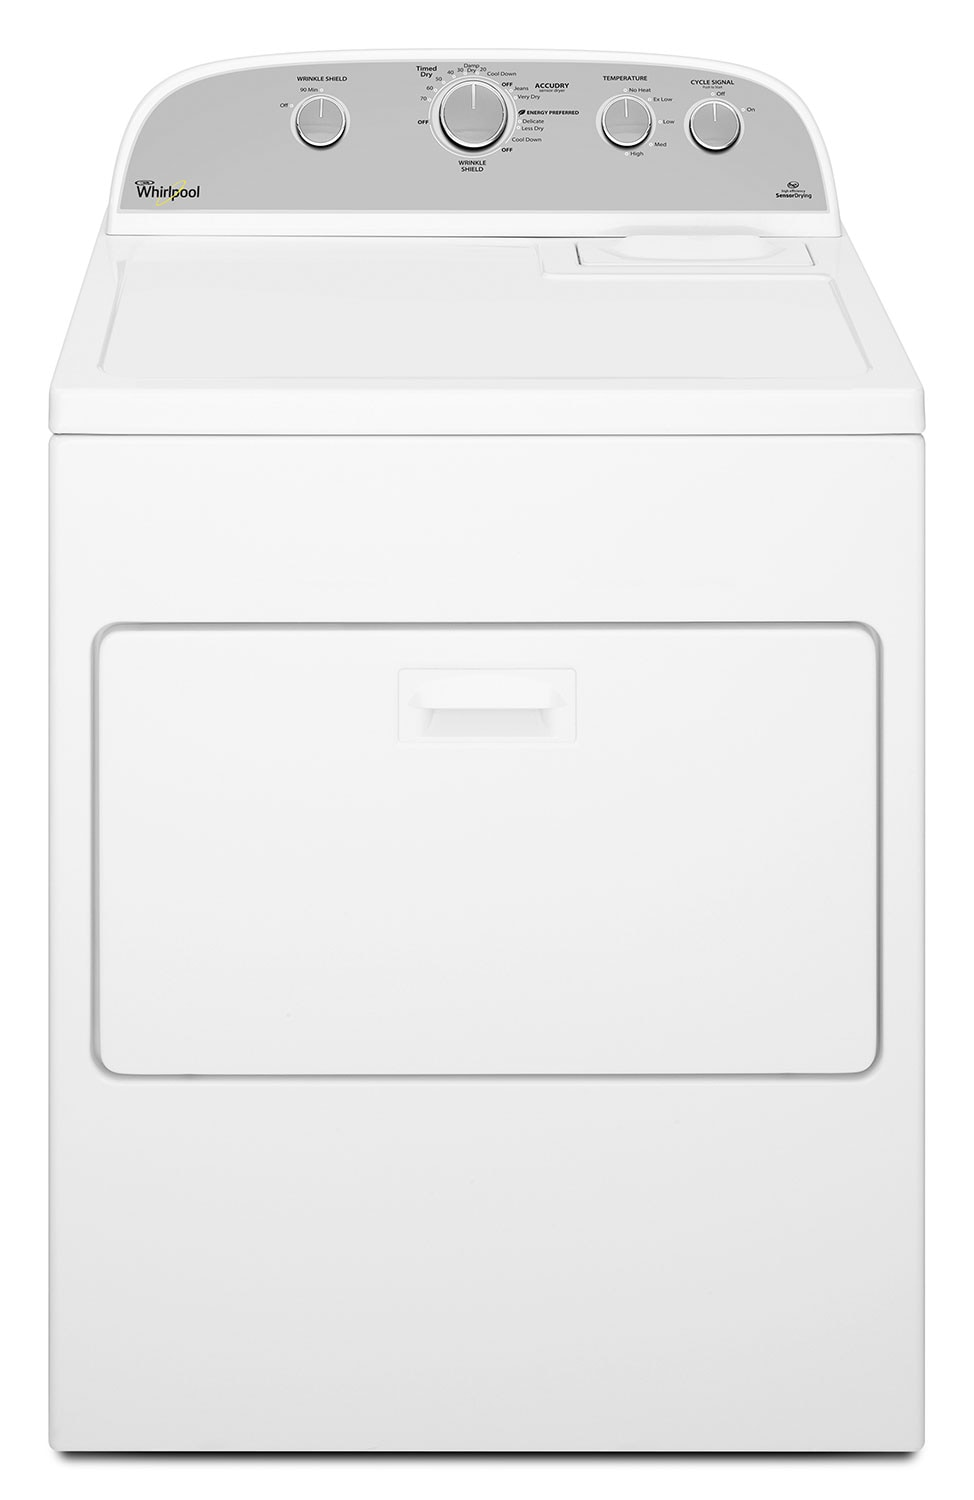 Washers and Dryers - Whirlpool White Gas Dryer (7.0 Cu. Ft.) - WGD4915EW